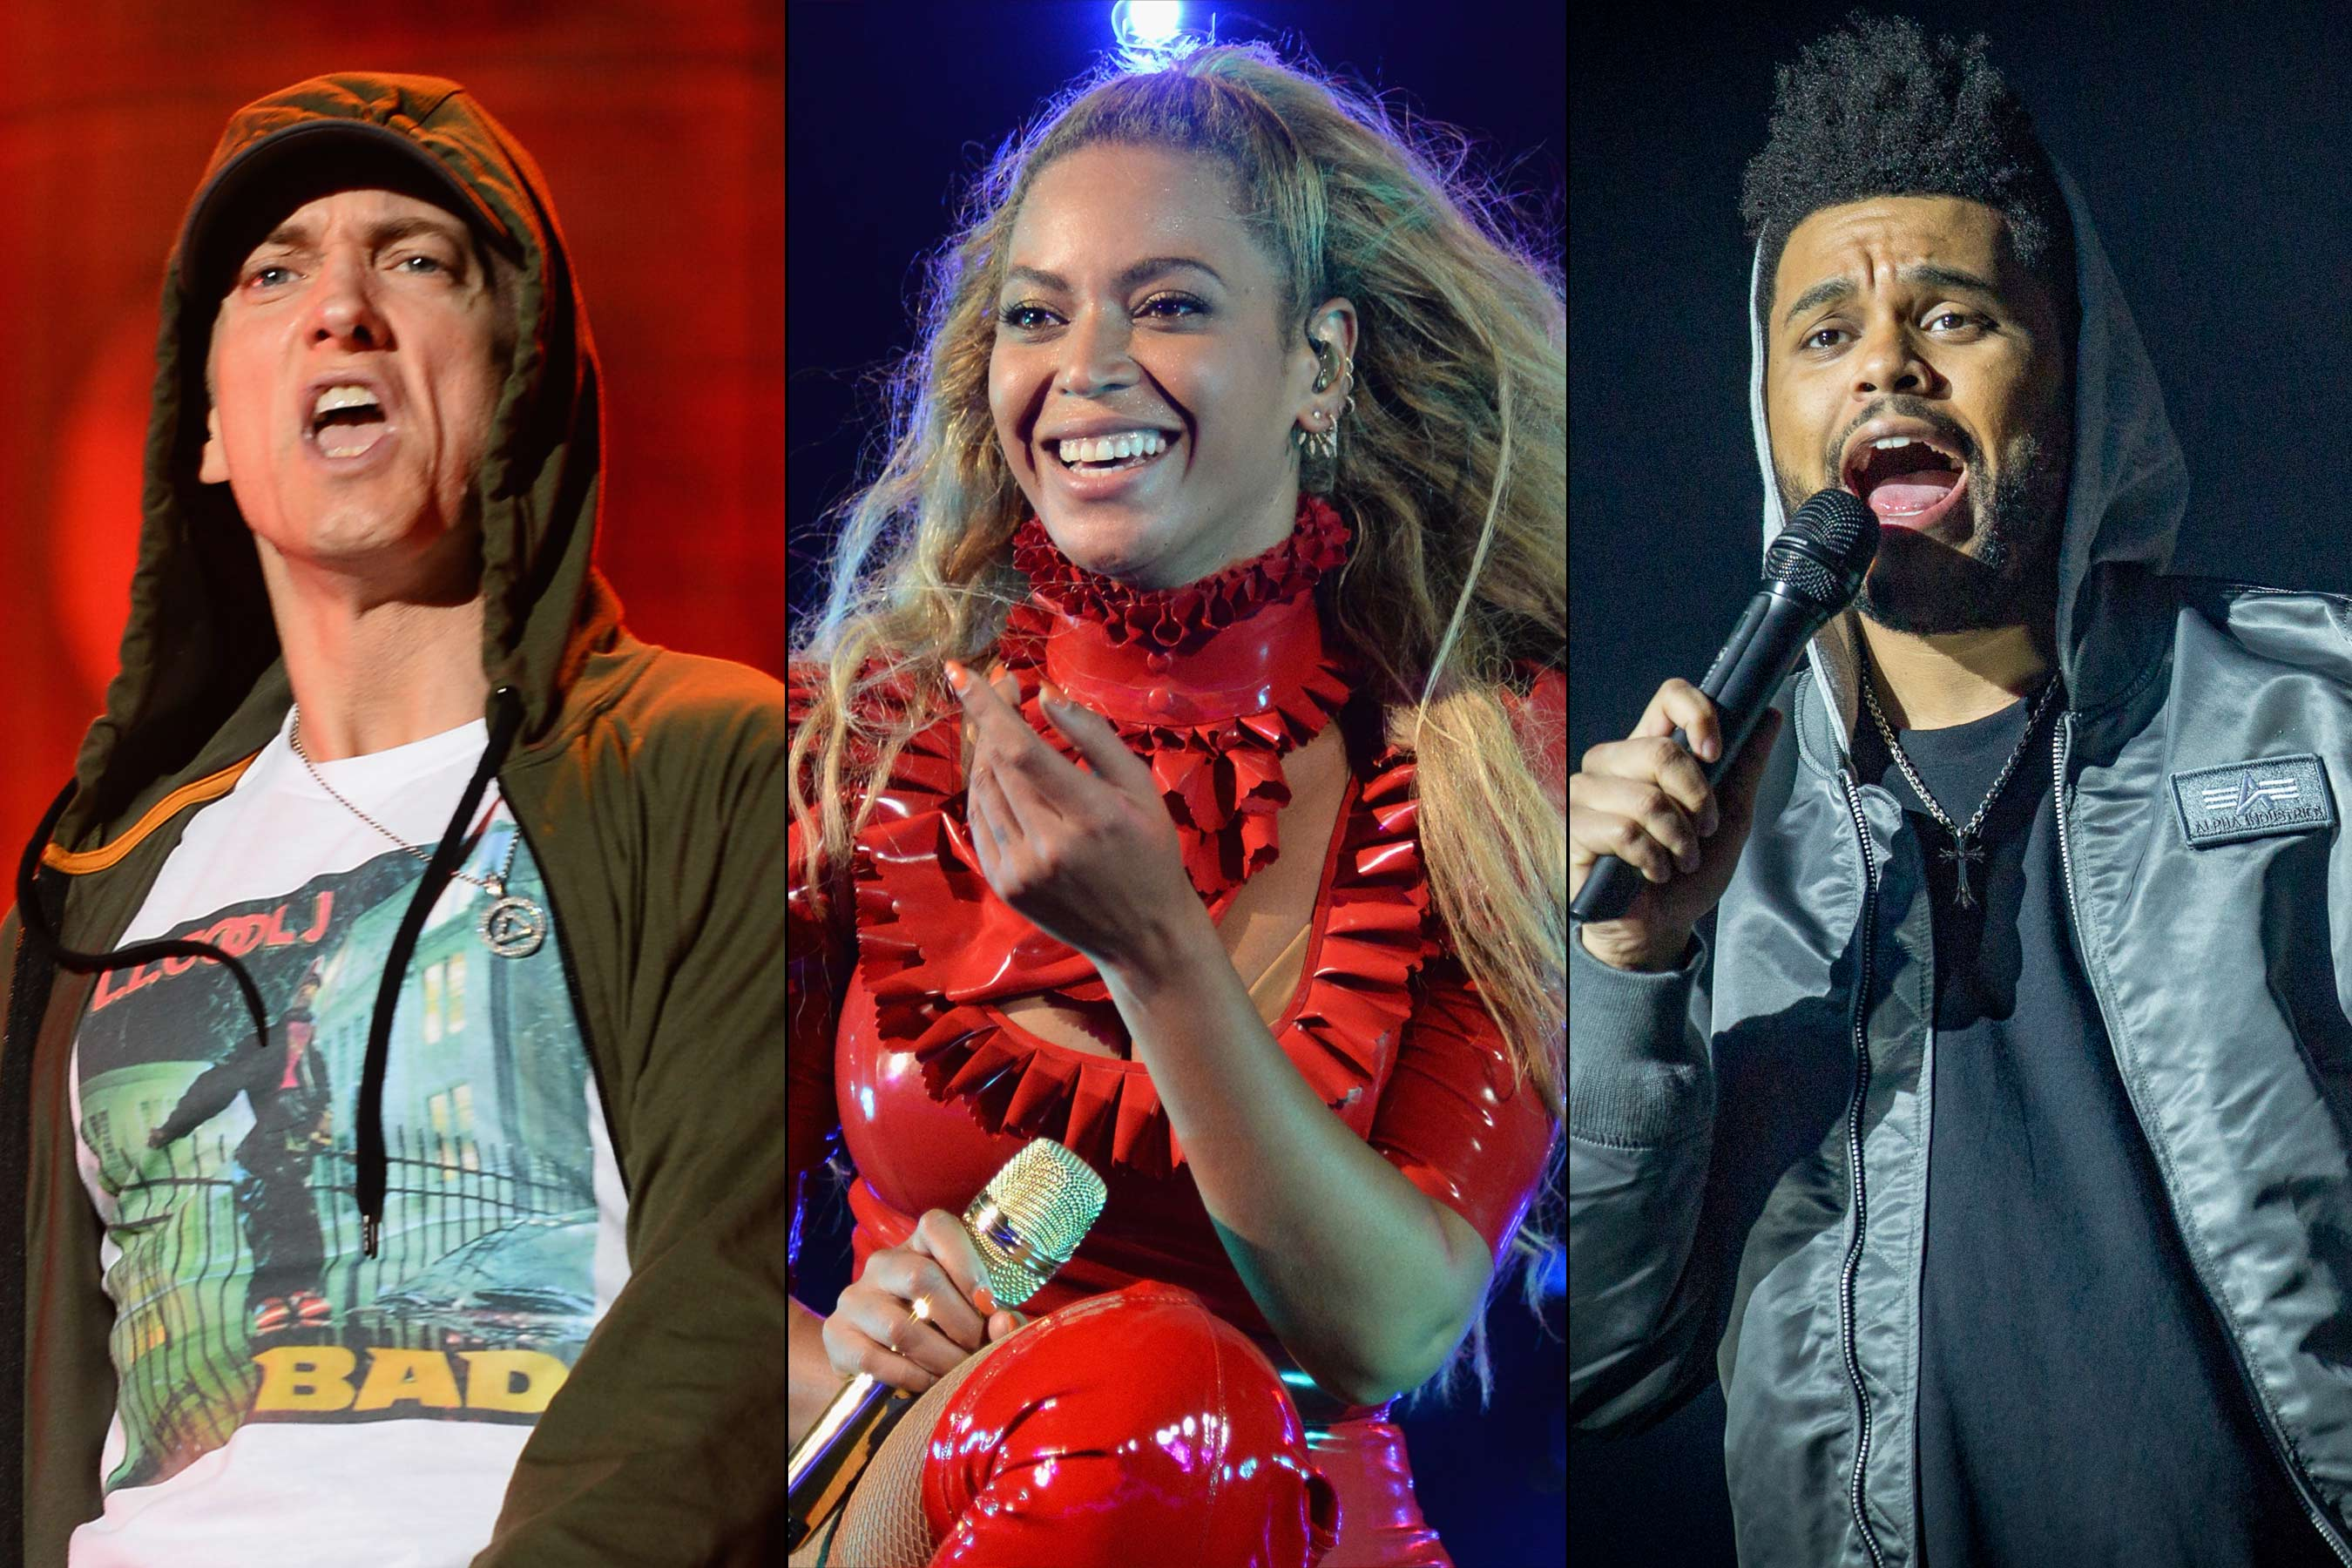 Coachella 2018: The Weeknd and Eminem join Beyoncé as headliners